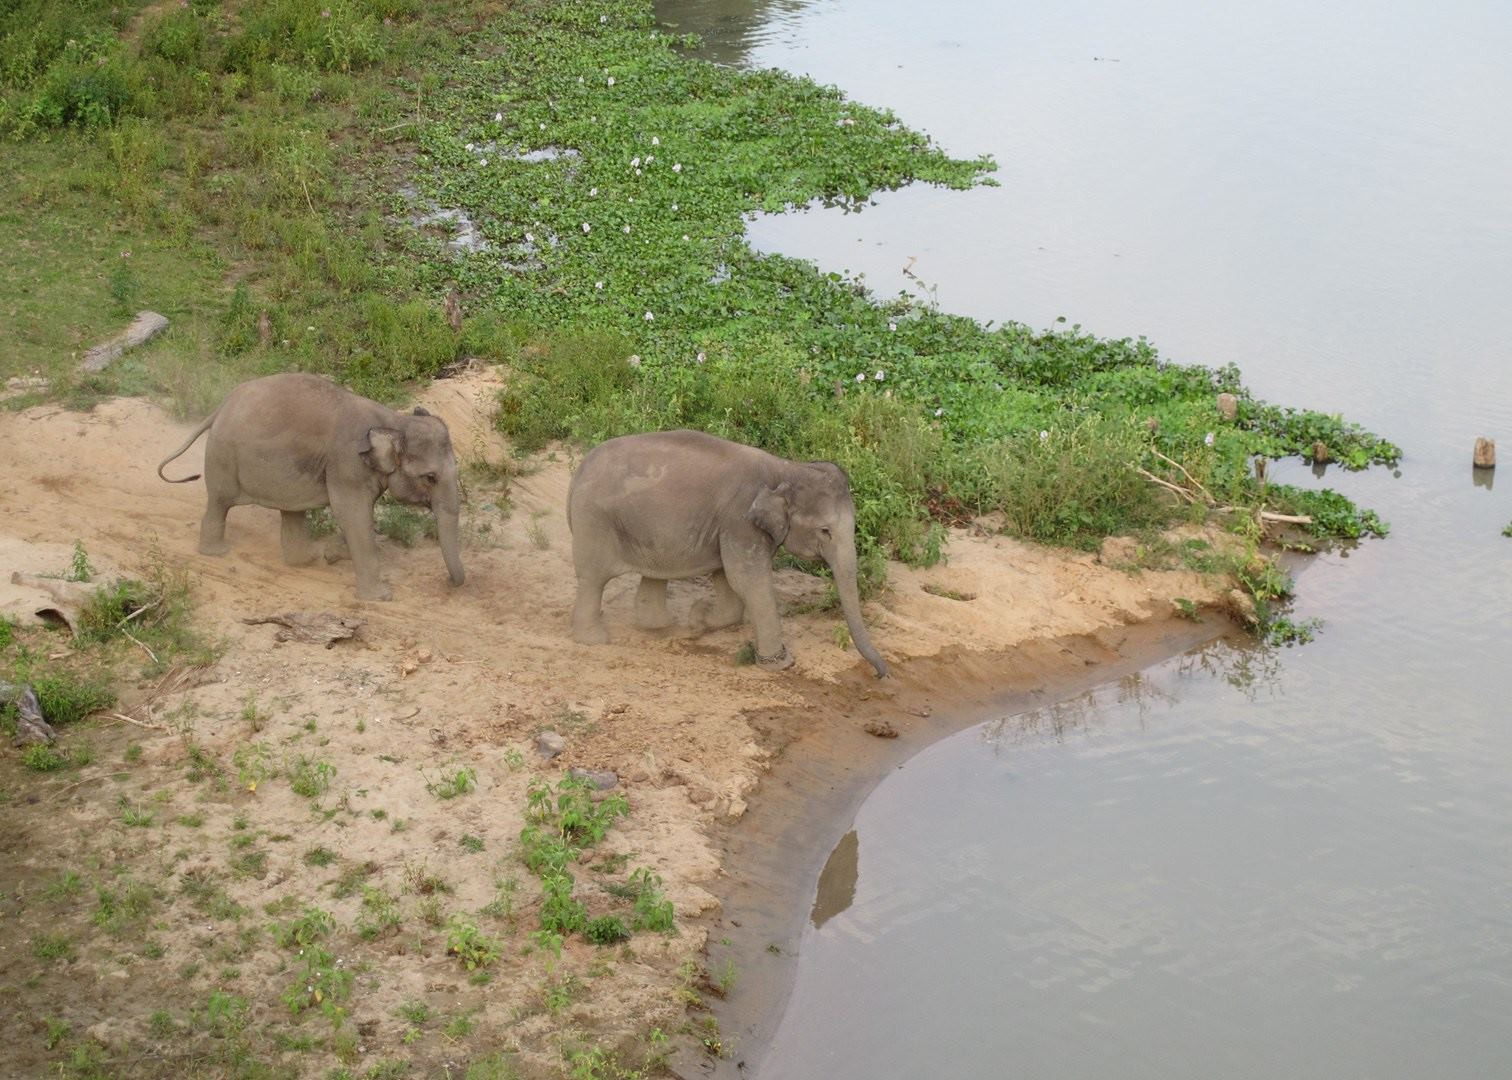 Kaziranga India  City new picture : Visit Kaziranga National Park in India | Audley Travel